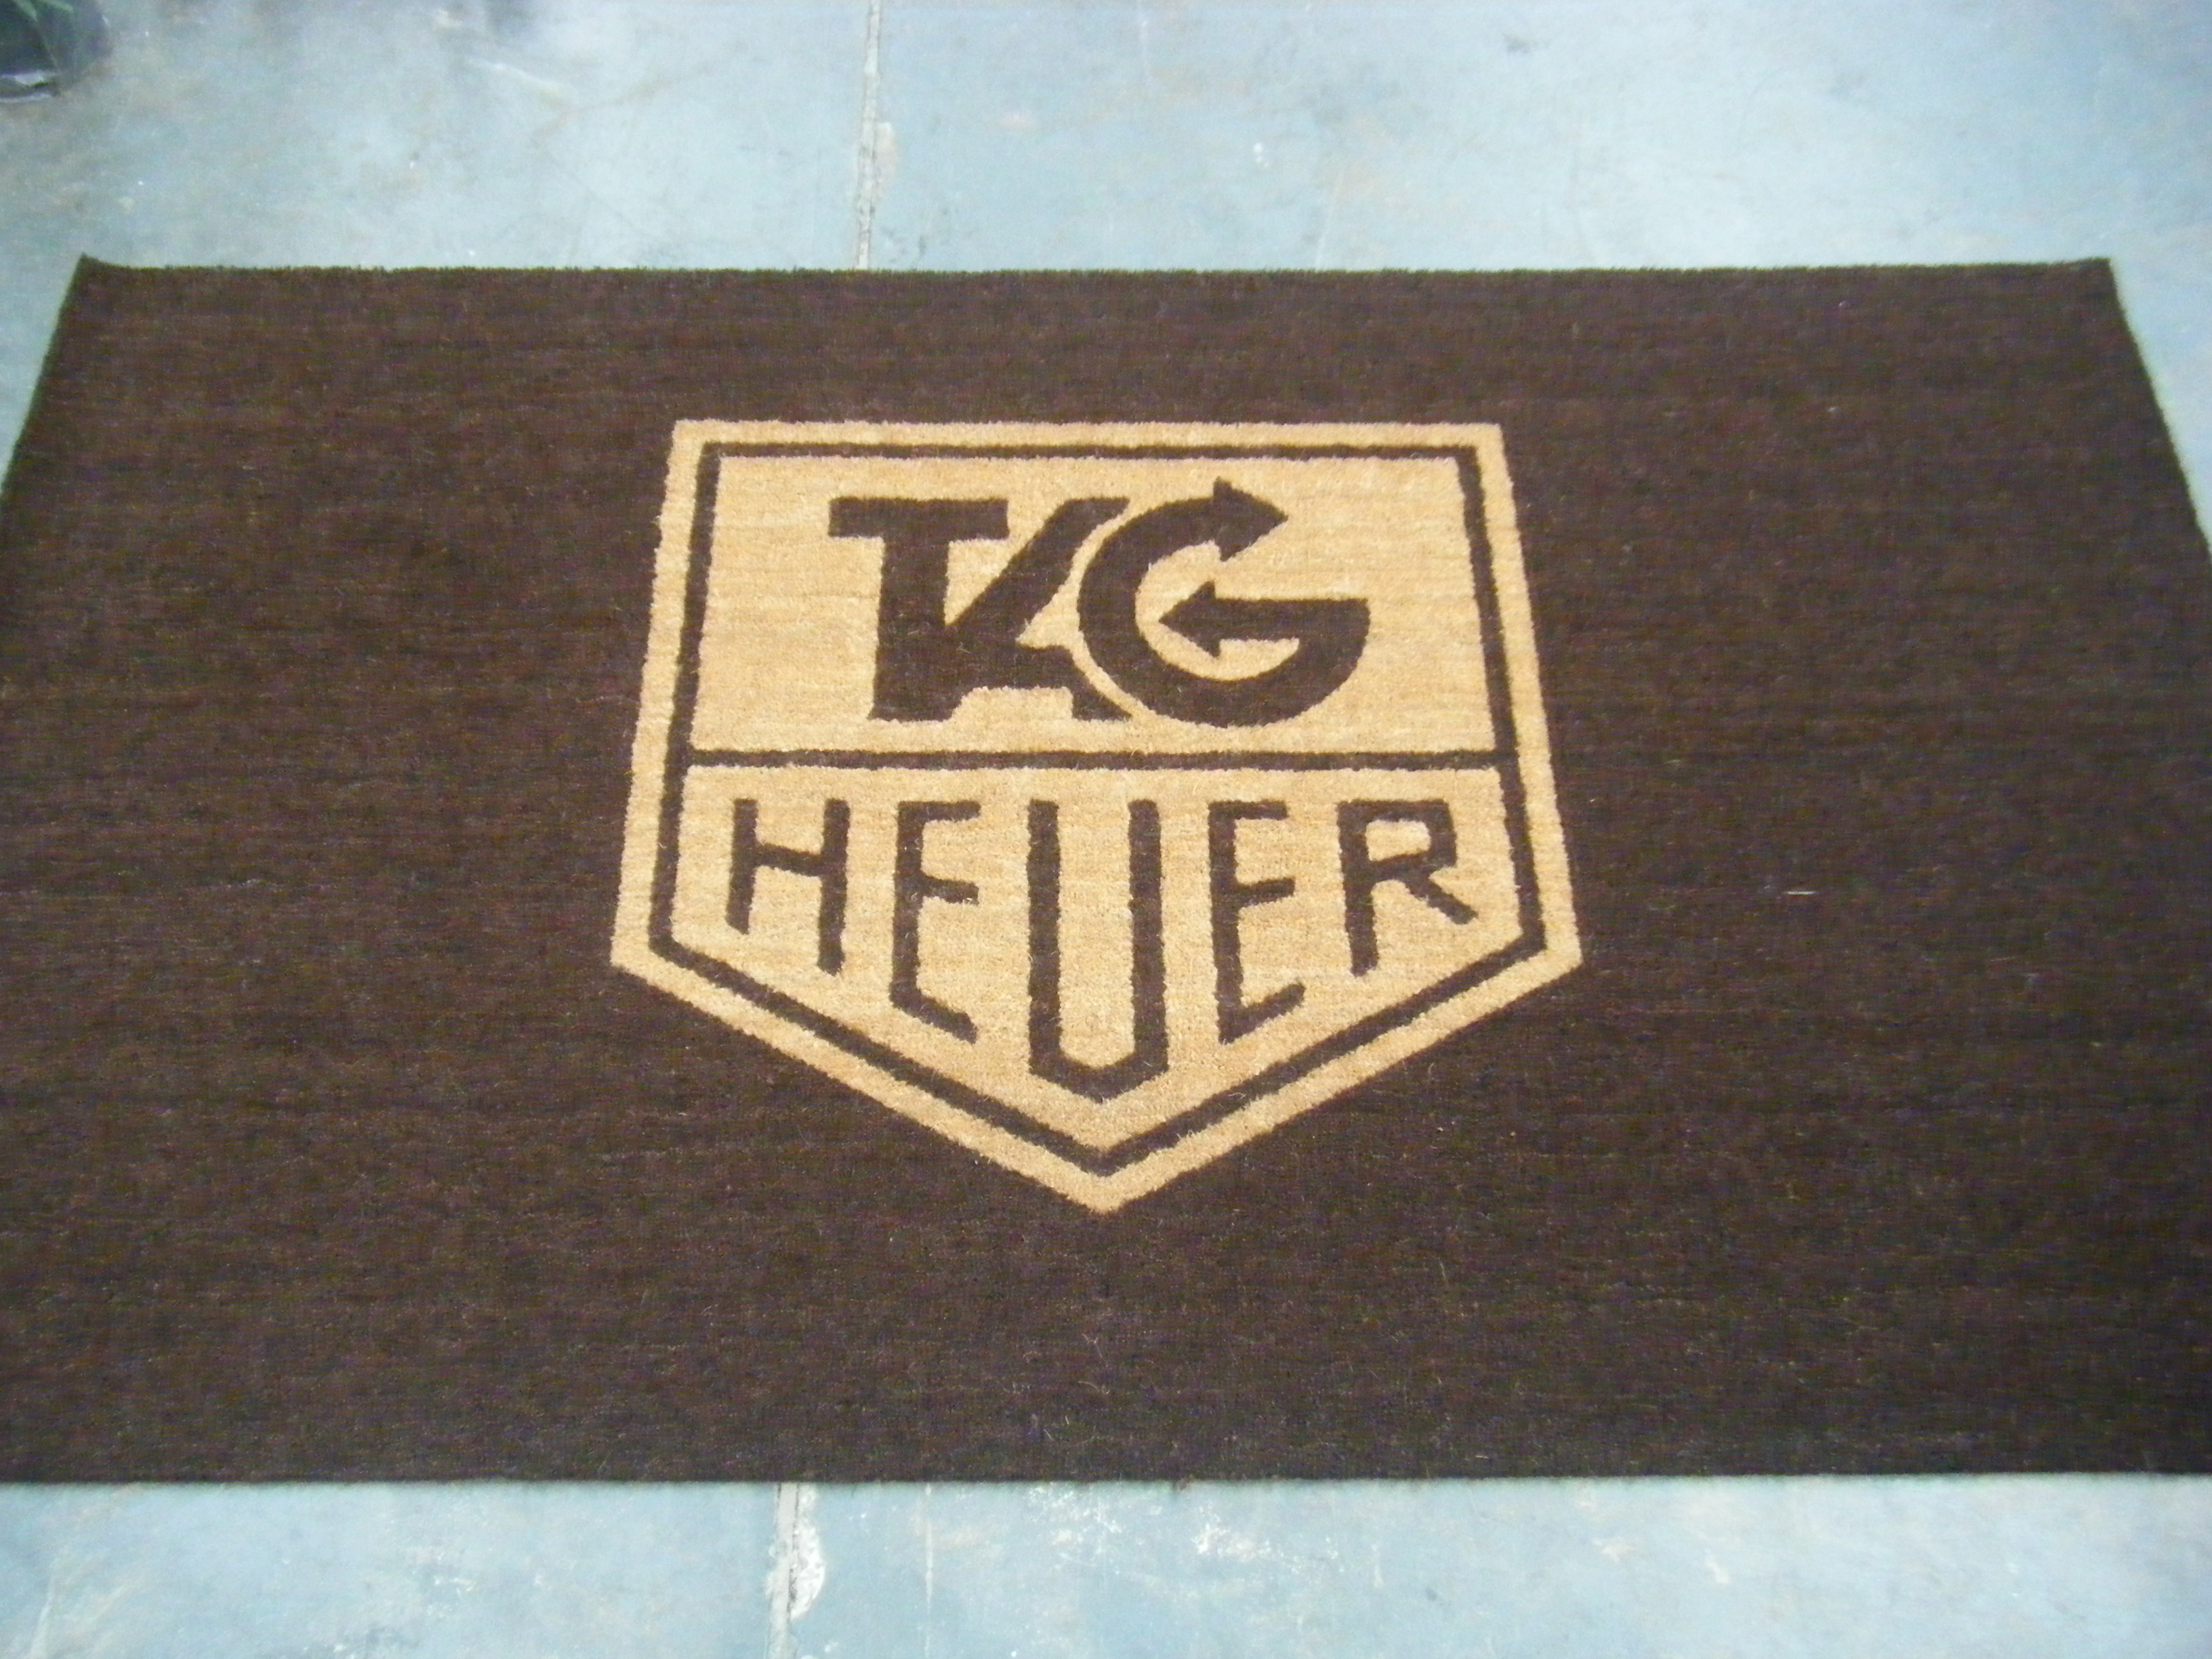 mats super mcquillen keekirshop door guard products willard absorbent magic doormat weather